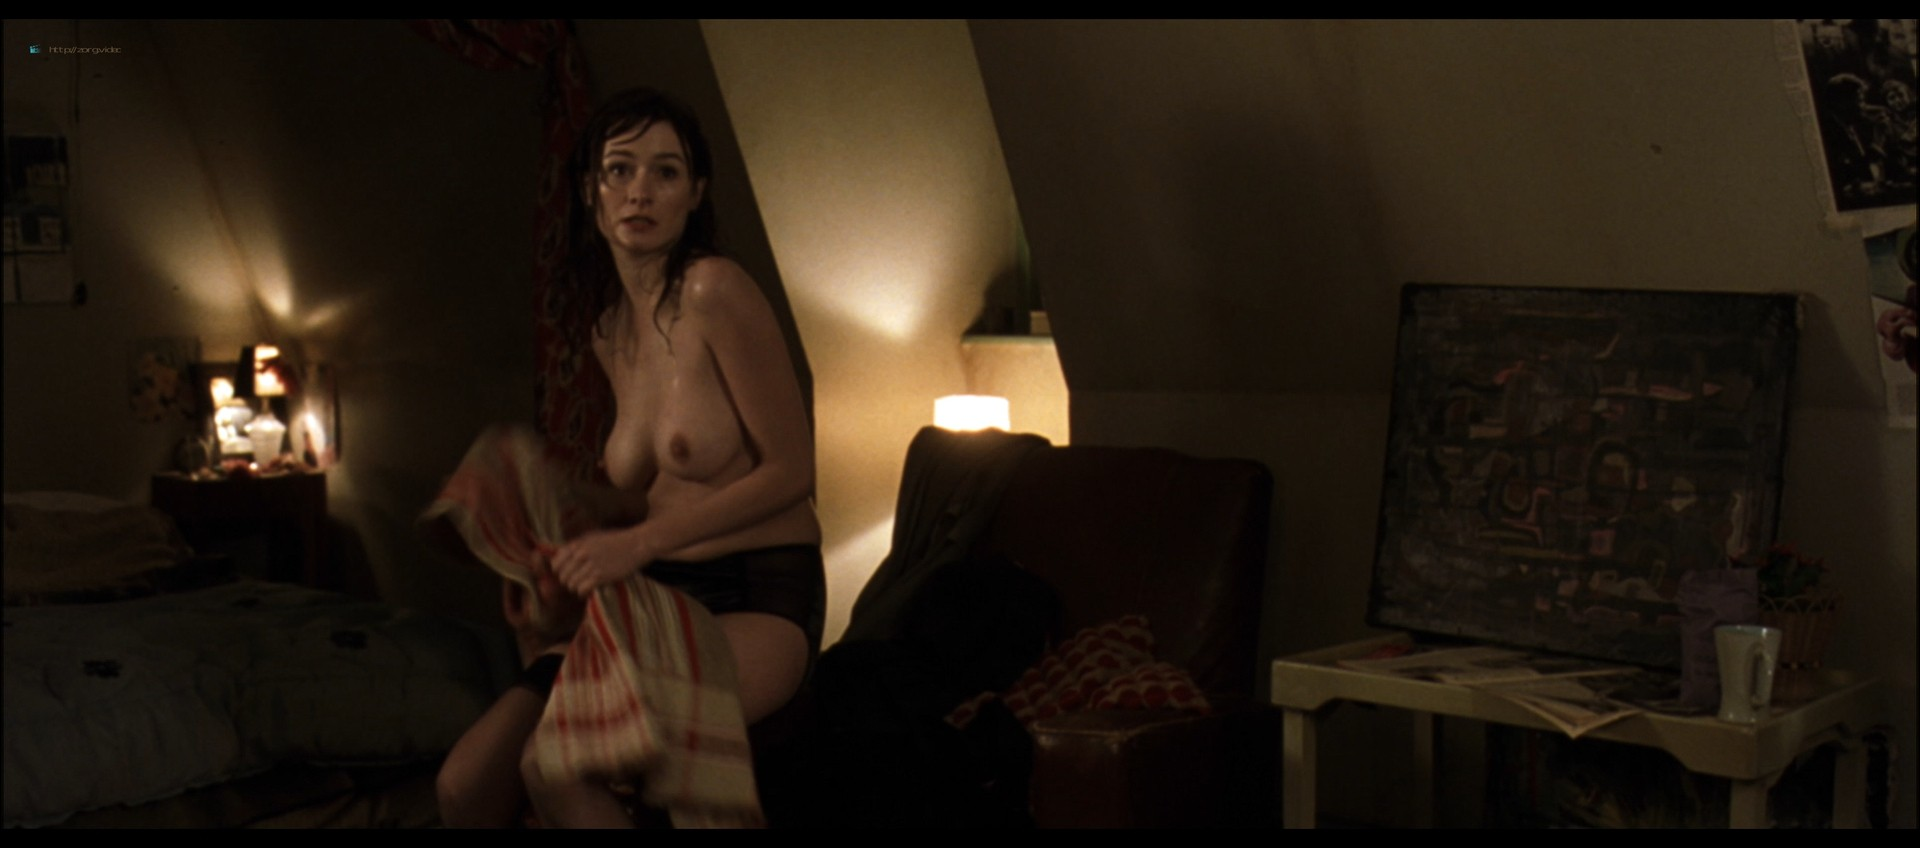 Emily Mortimer nude Tilda Swinton and Pauline Turner nude full frontal - Young Adam (2003) HD 1080p BluRay (7)